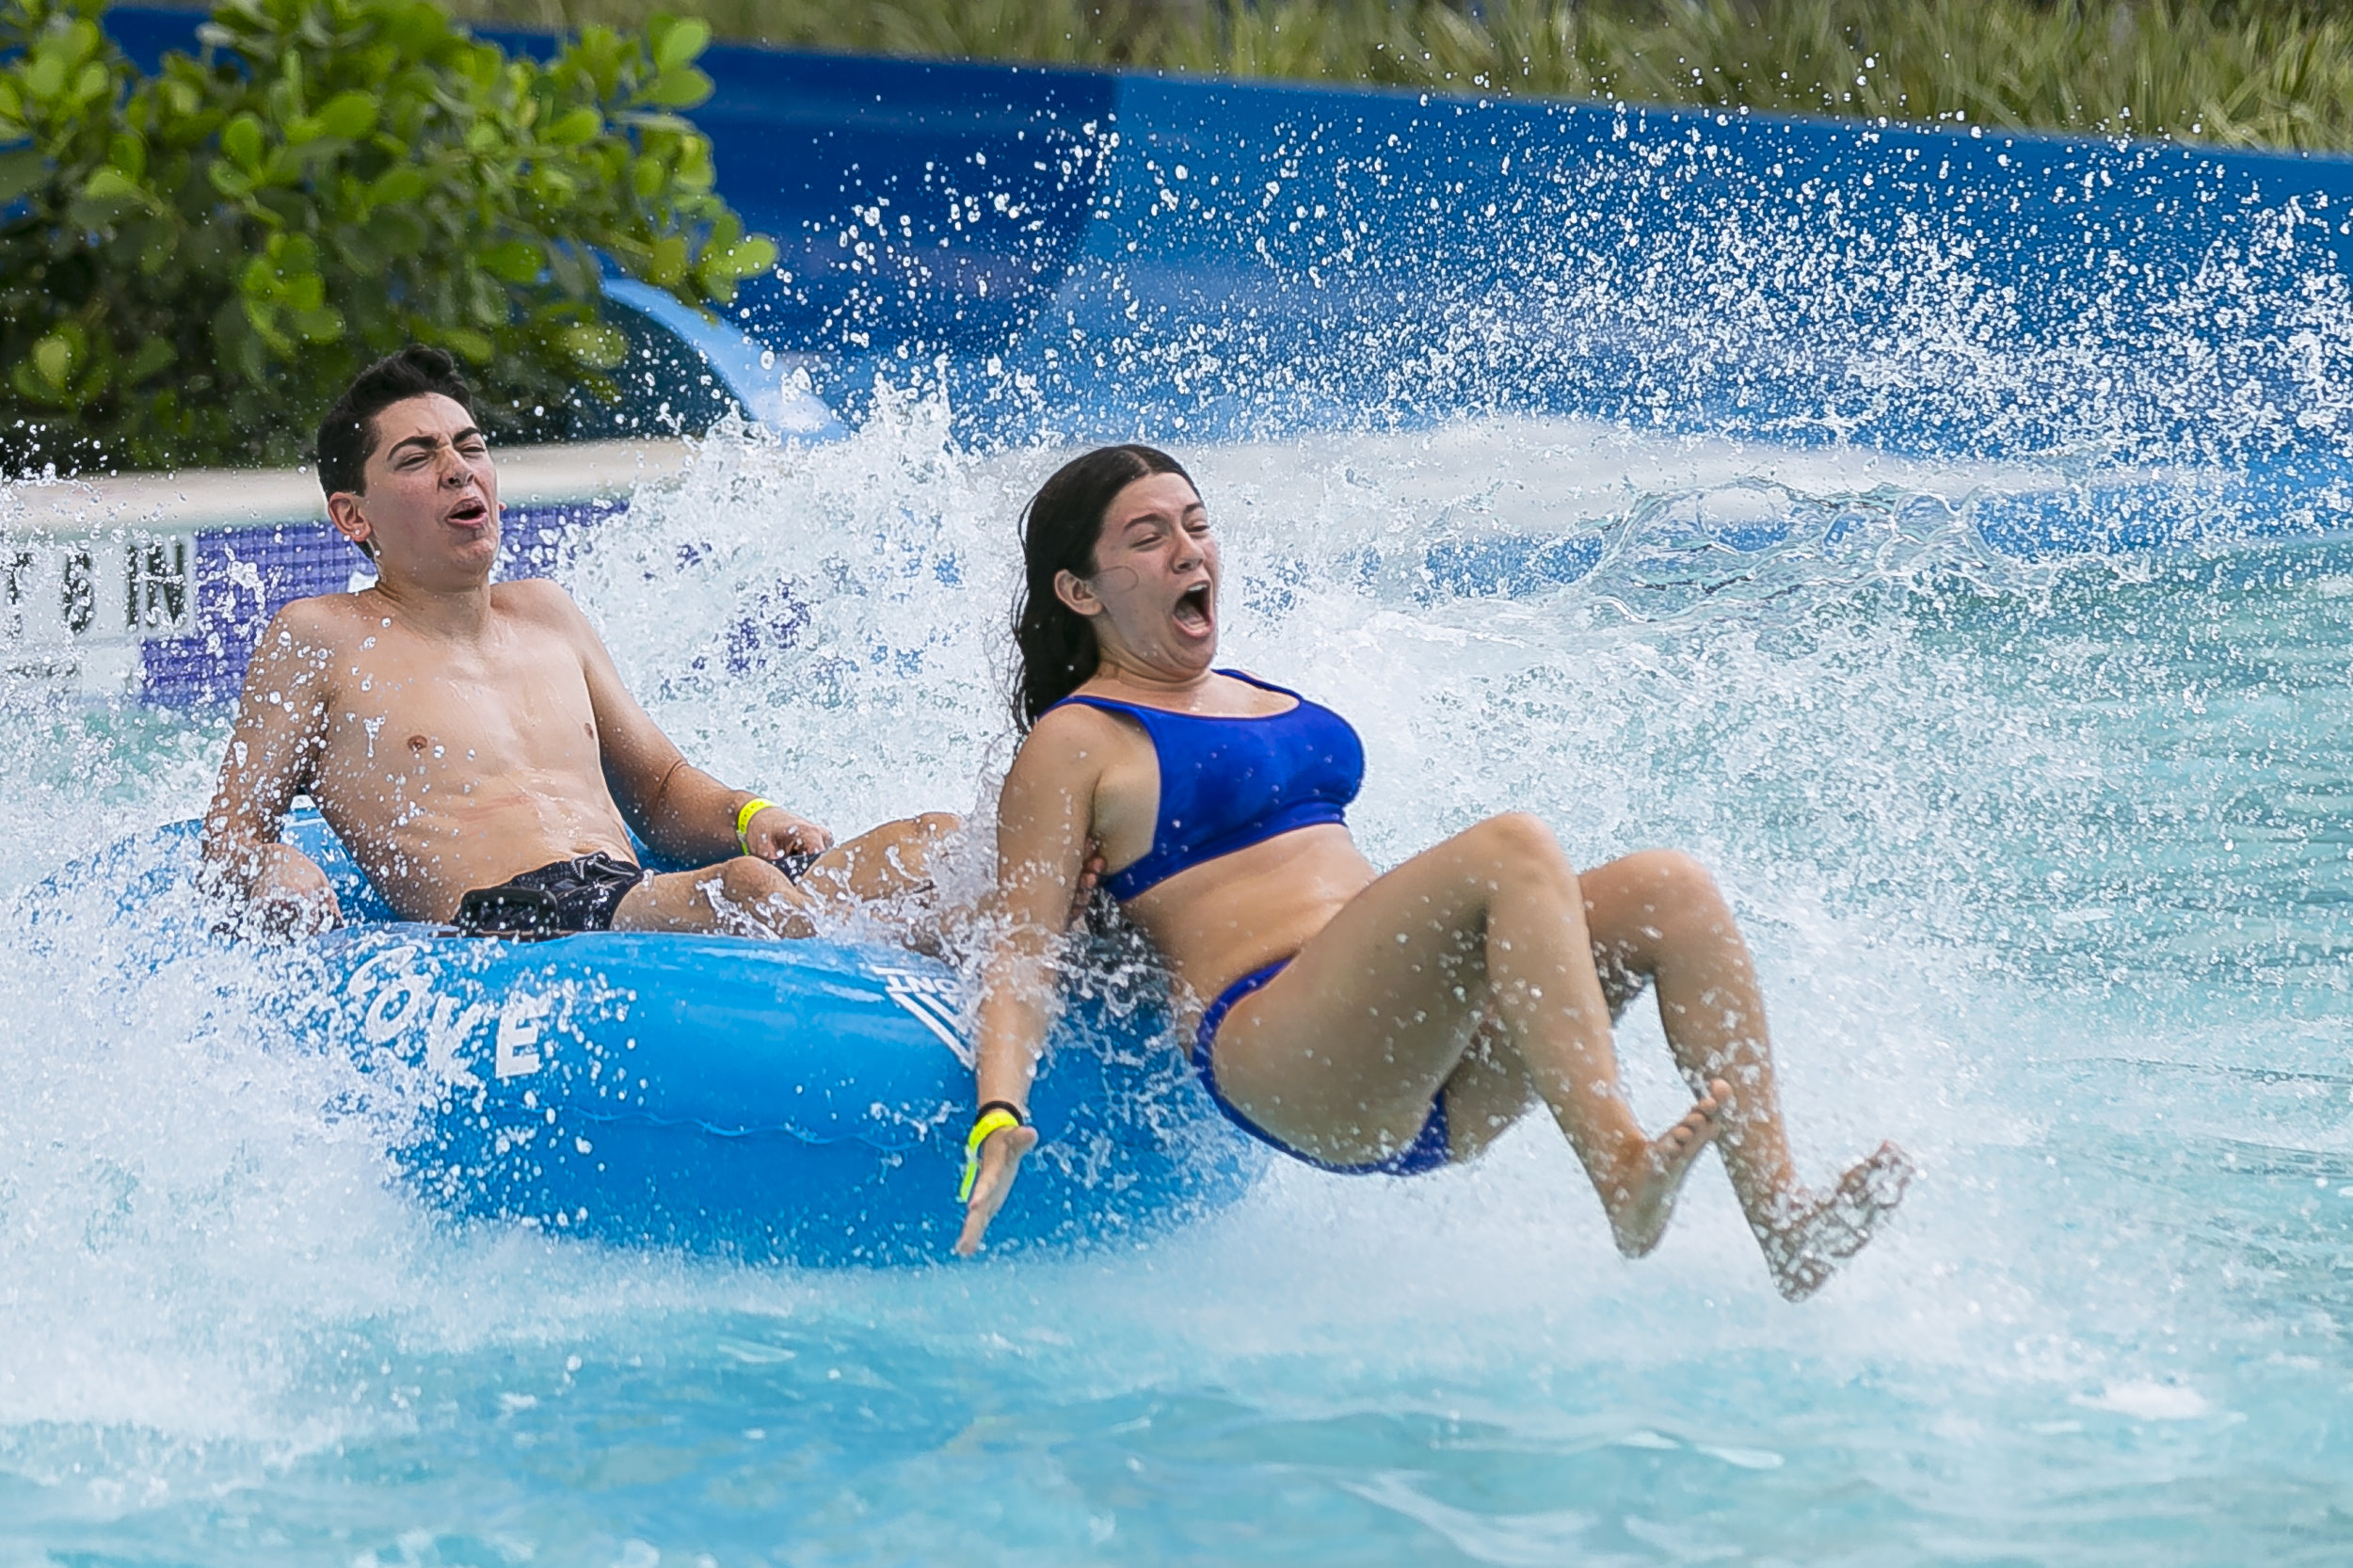 Brenda Martinez, 17, and her cousin, Jonathan Martinez, 17, go down a waterslide at Tidal Cove Waterpark in Aventura's JW Marriott Miami Turnberry Resort & Spa on Saturday, June 8, 2019. The park has seven water slides, a FlowRider surfing pool and a lazy river among other amenities.